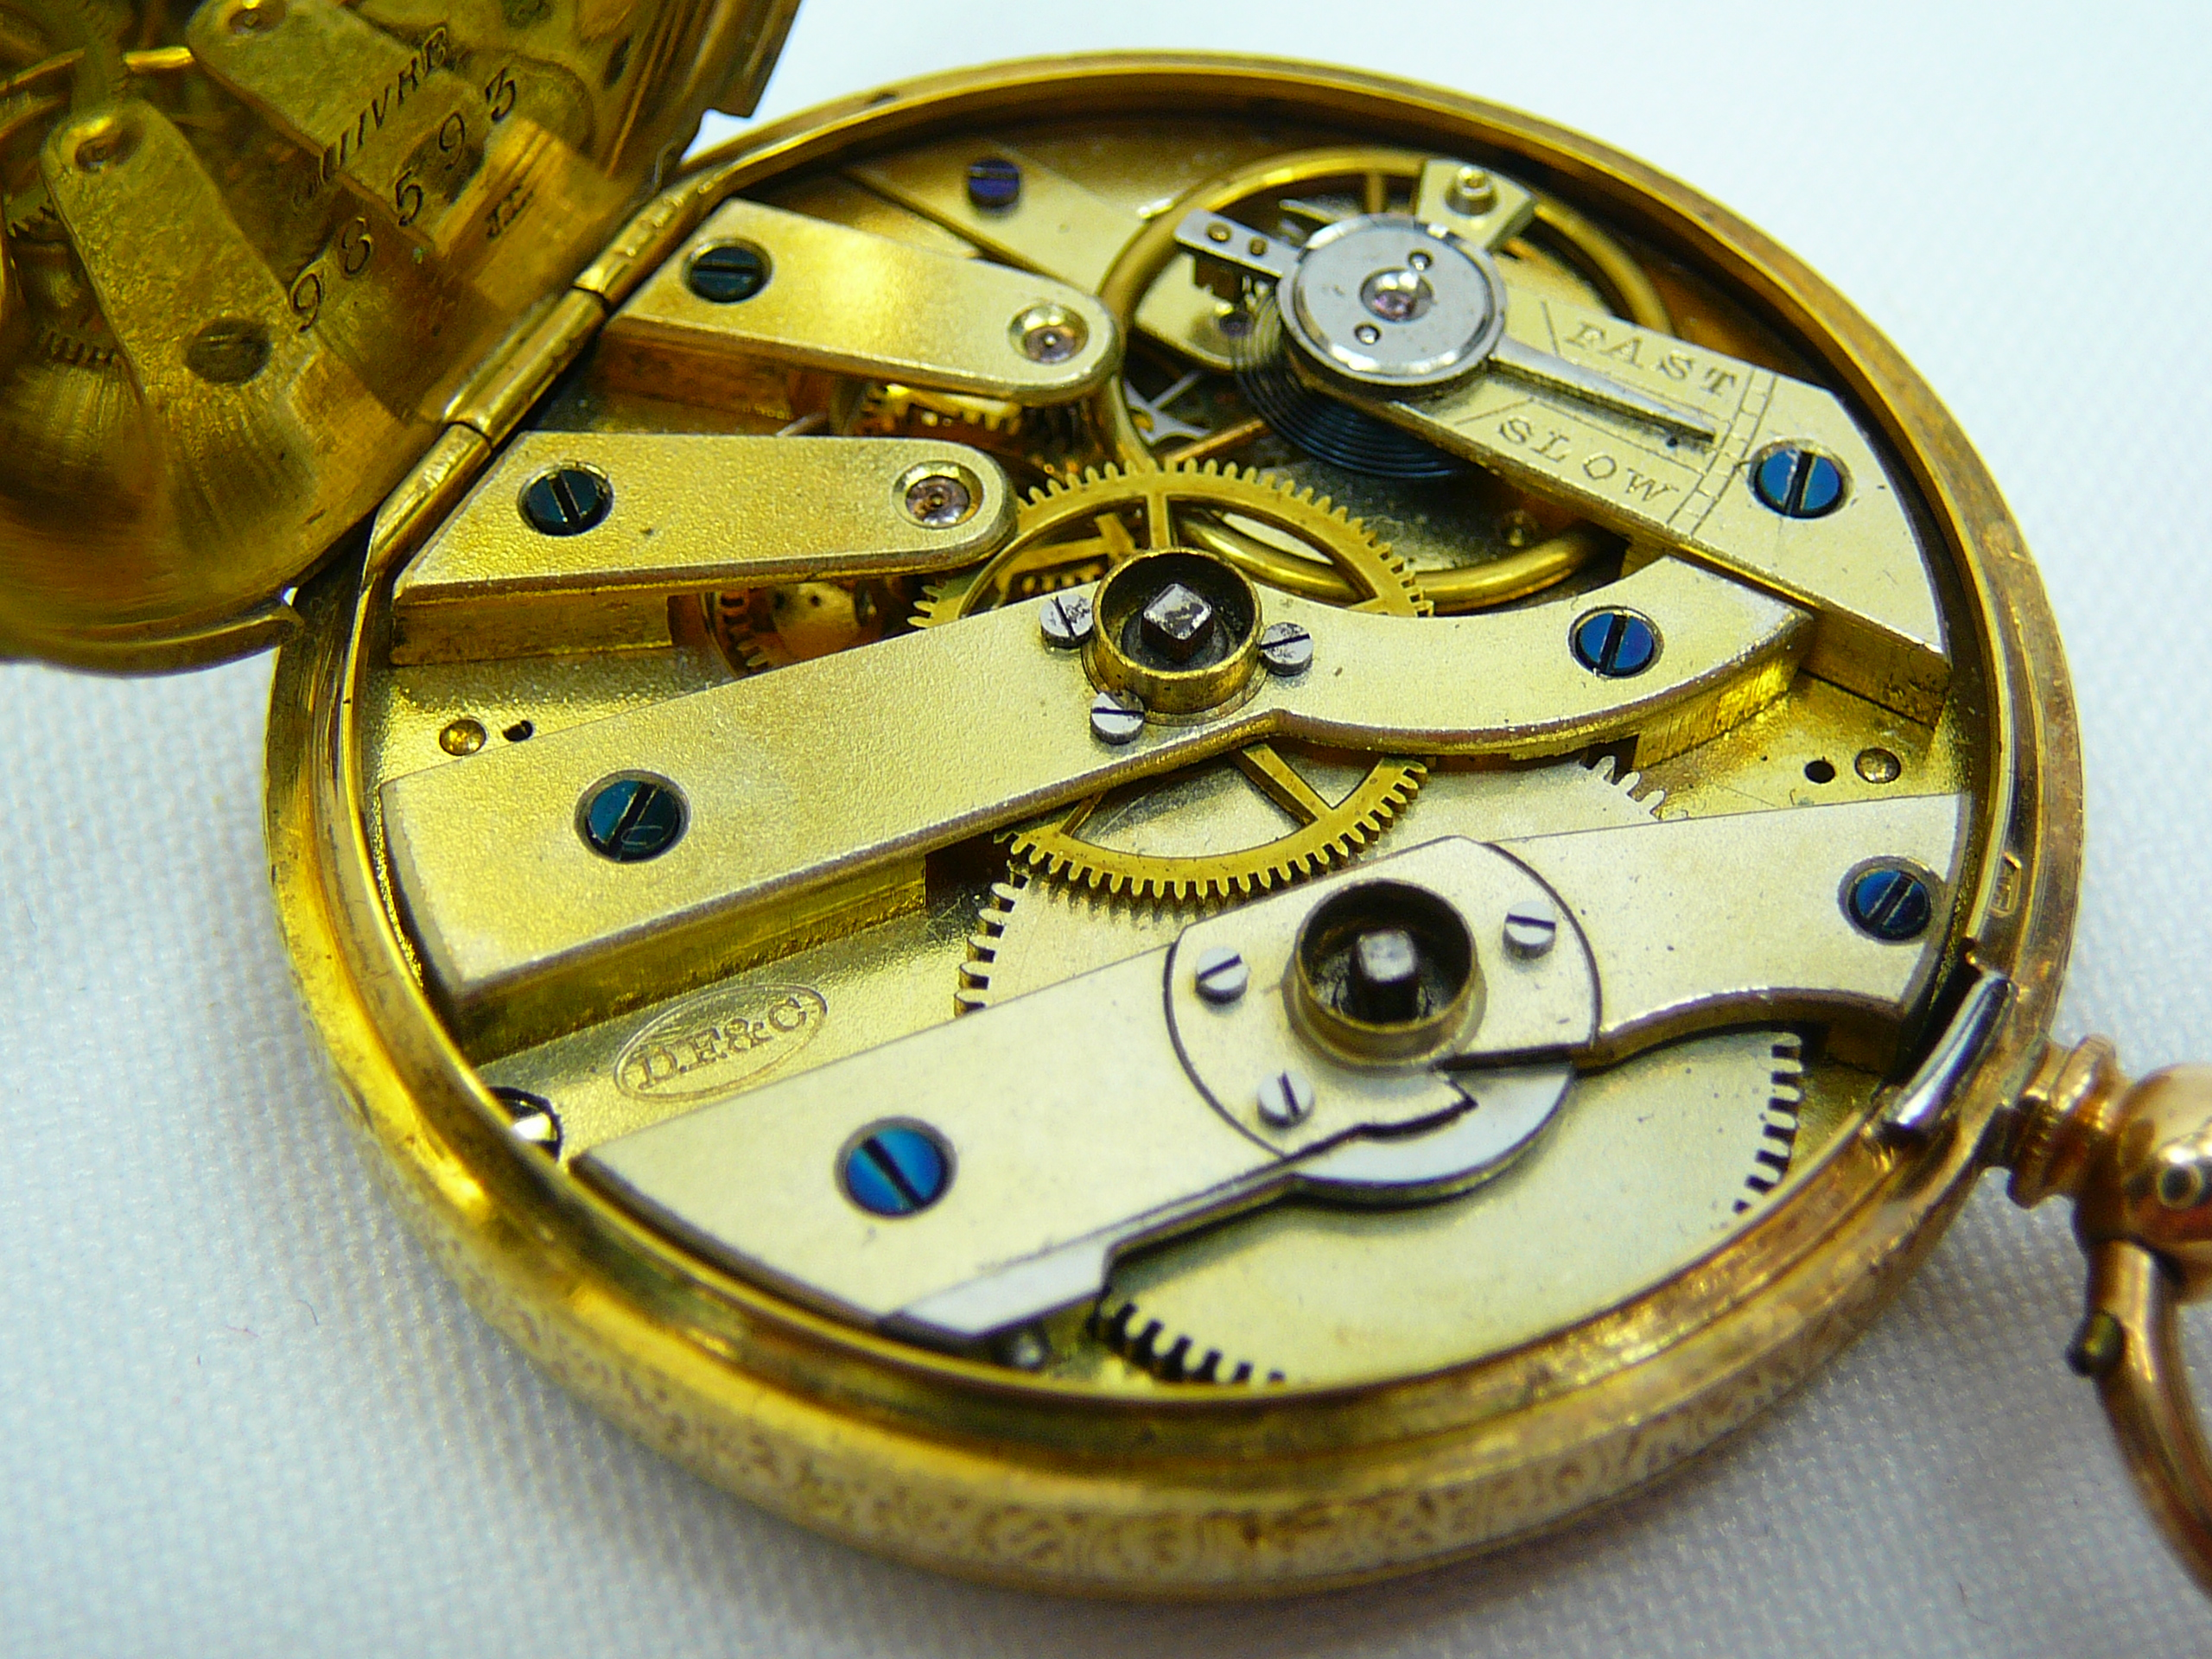 Ladies Antique Gold Fob Watch - Image 5 of 5